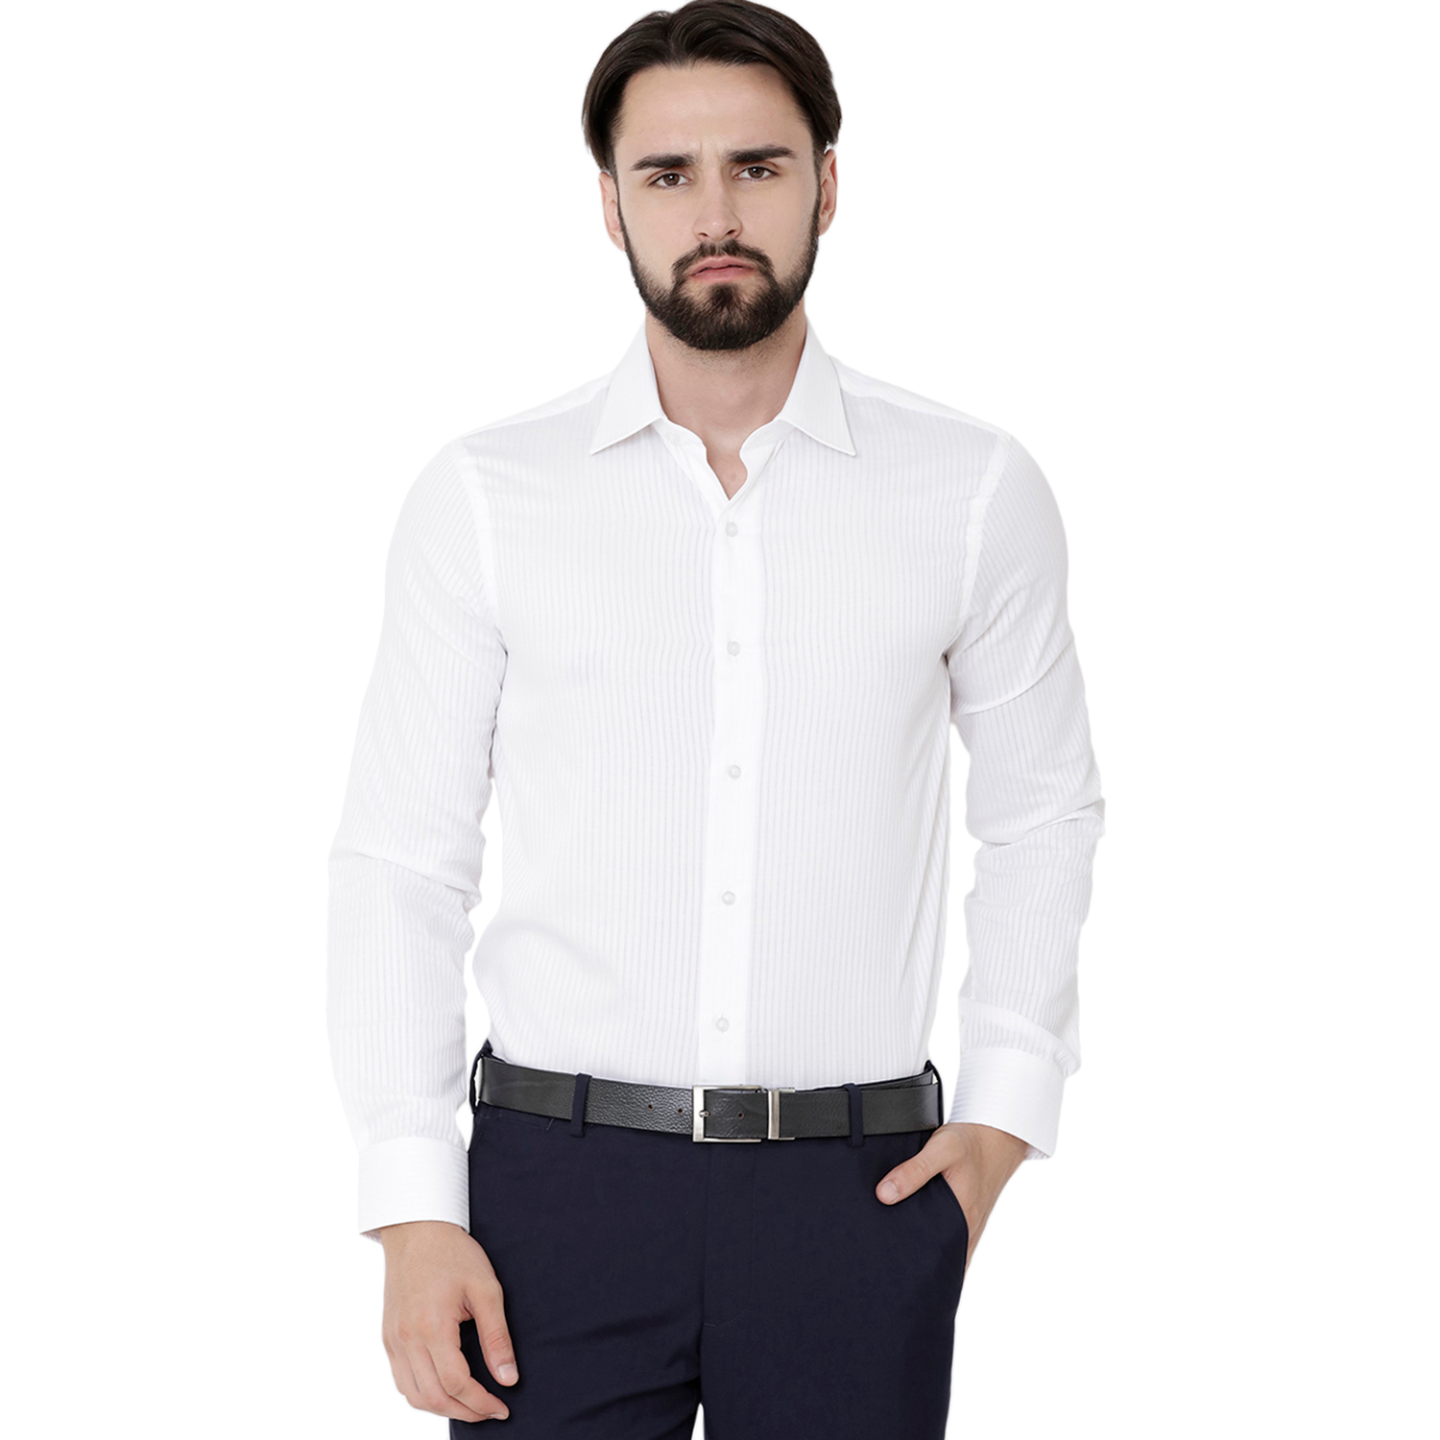 Double TWO White Solid Formal Shirt